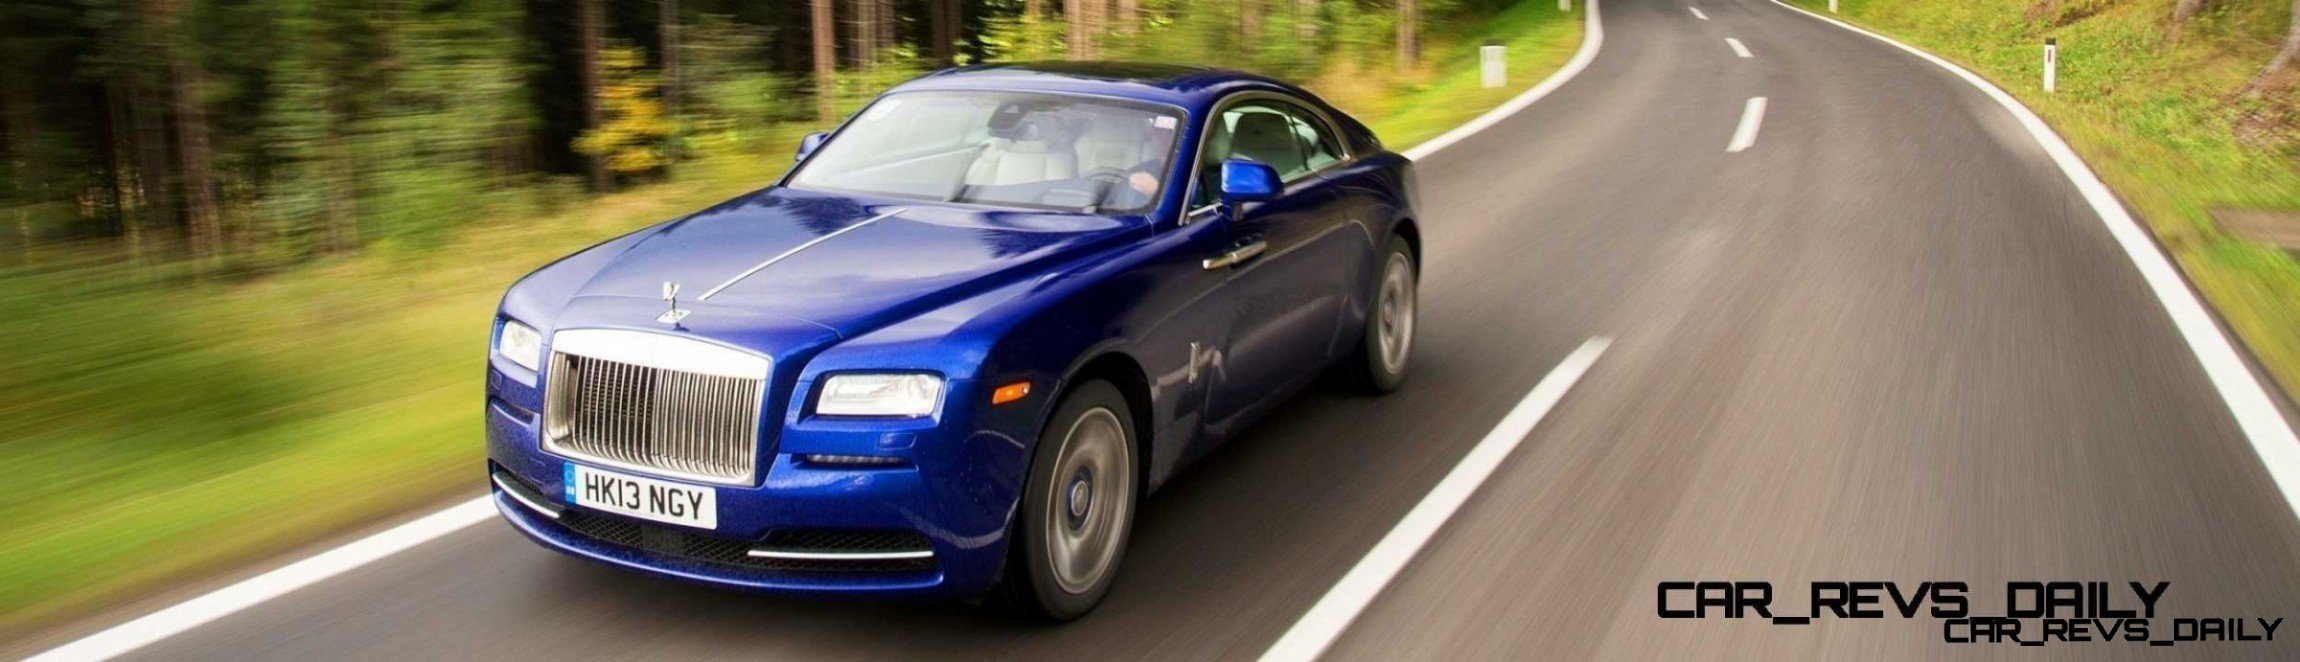 Rolls-Royce Wraith - Color Showcase - Salamanca Blue19